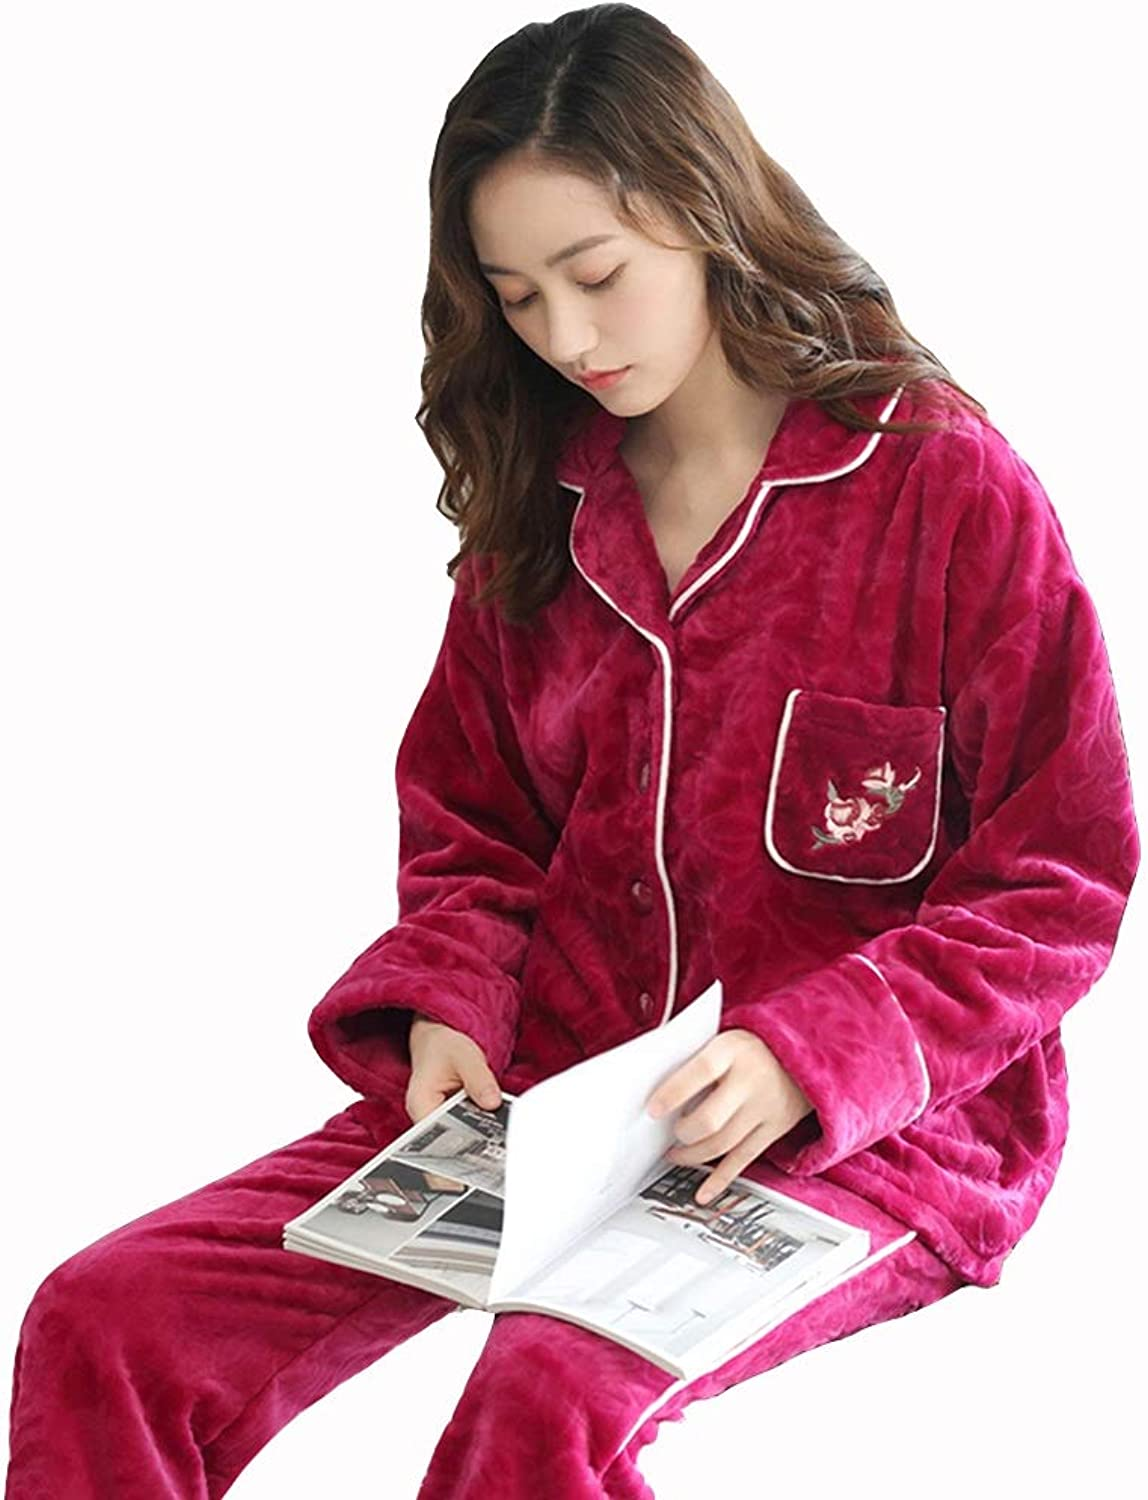 GWDJ Pajamas, Printing Splicing Edge Pajamas Female Winter Thicken Home Clothing Keep Warm Convenient Comfortable Loose Two Sets of Casual Wear, 4 colors Optional (color   pink red, Size   XL)